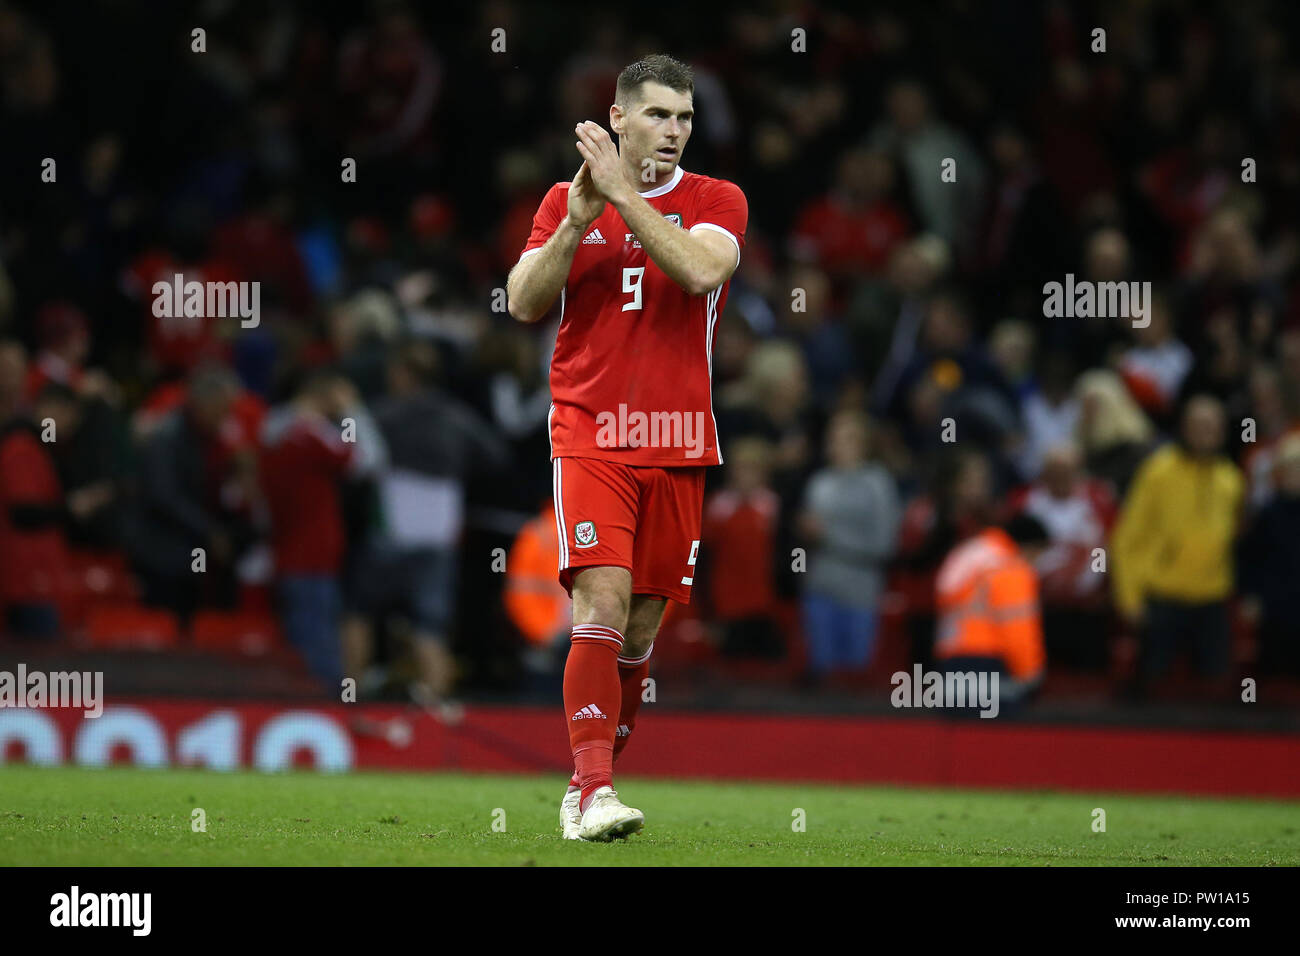 Cardiff, UK. 11th Oct 2018. Sam Vokes of Wales. Football friendly international match, Wales v Spain at the Principality Stadium in Cardiff , South Wales on Thursday 11th October 2018. picture by Andrew Orchard/Alamy Live News Stock Photo